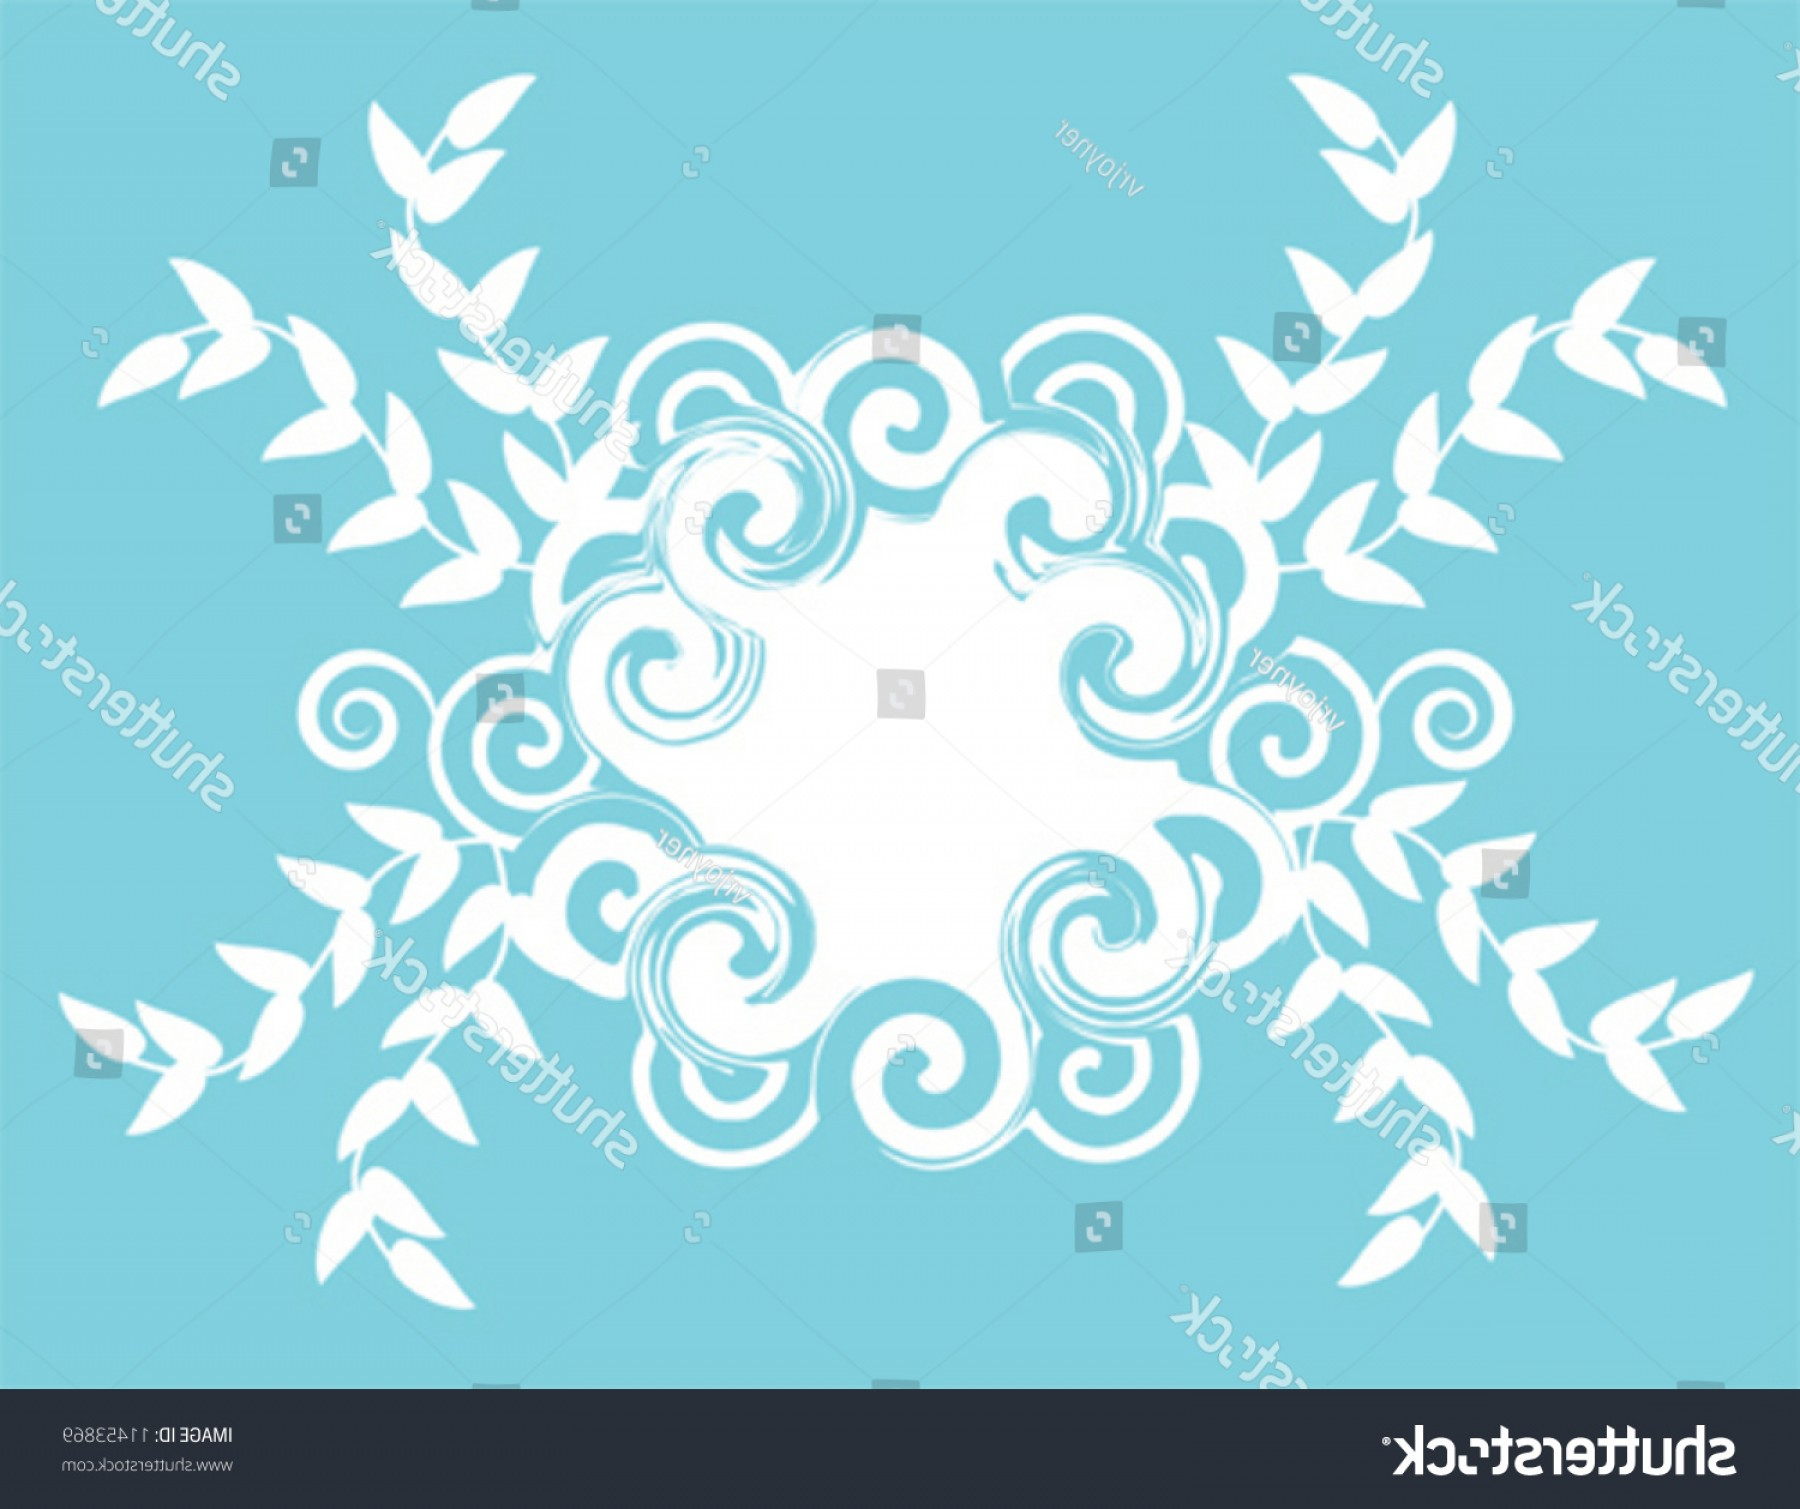 Illustrator Vector Format: Abstract Background Designed Illustrator Vector Format